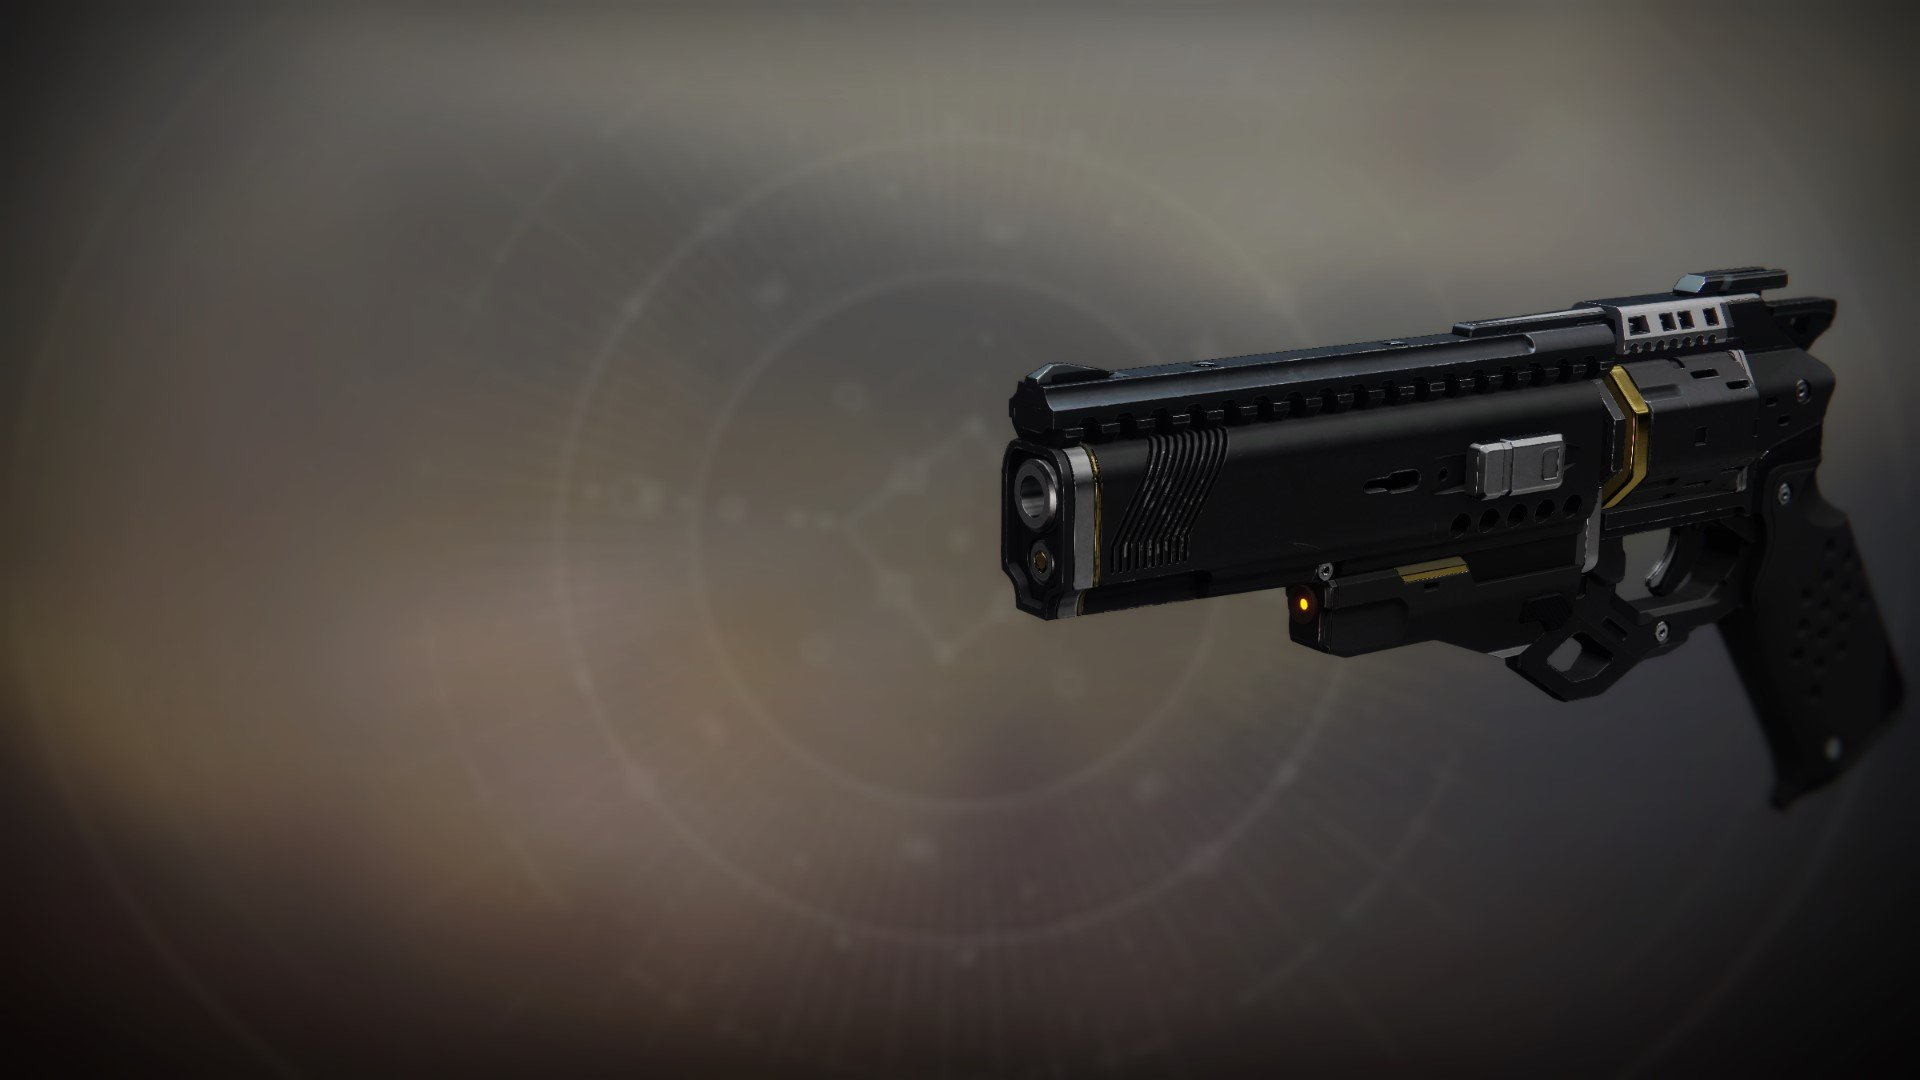 An in-game render of the Seventh Seraph Officer Revolver.